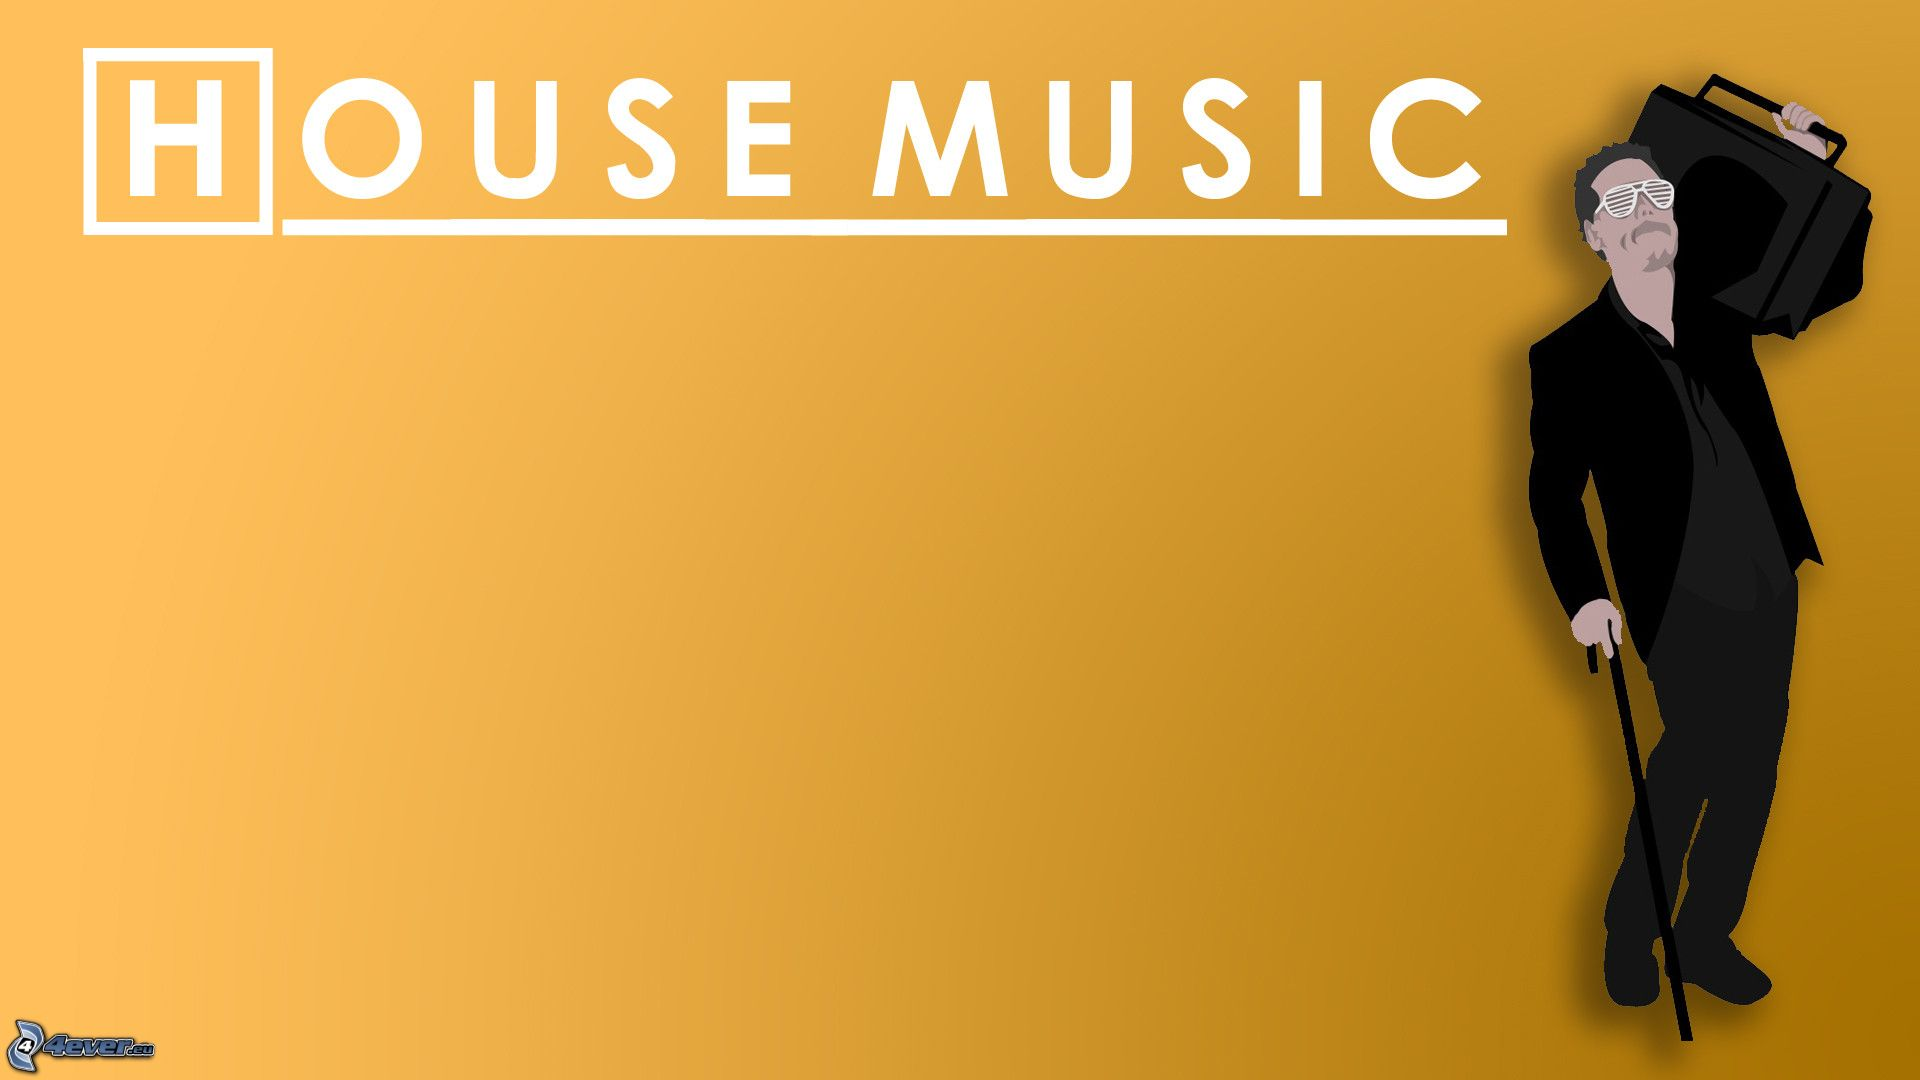 House music for House music meaning